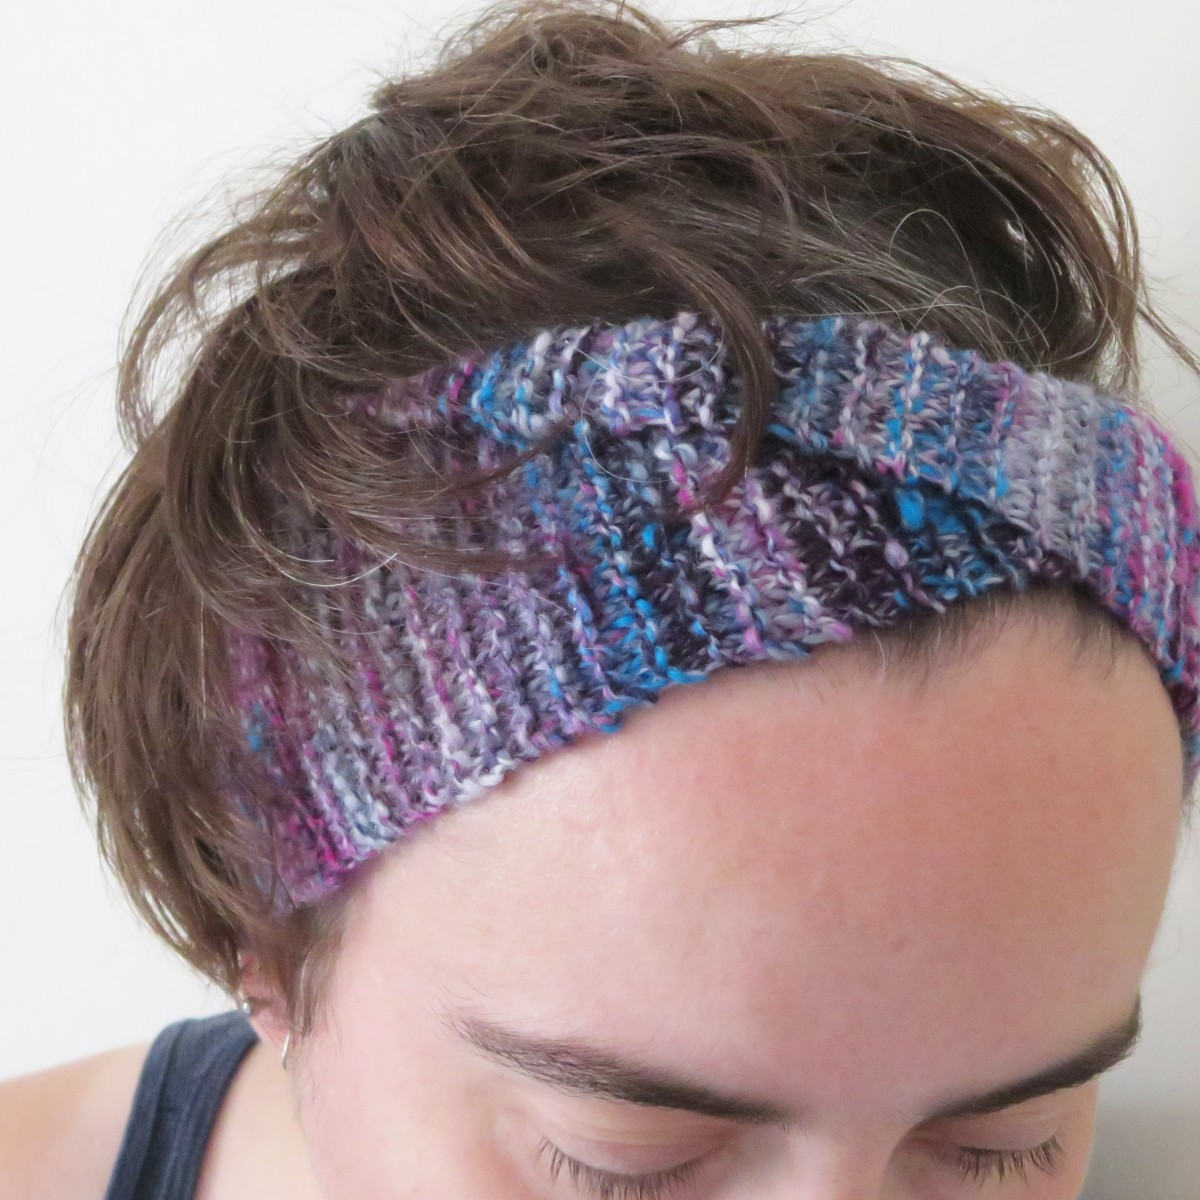 Free 'Alice' Headband Knitting Pattern